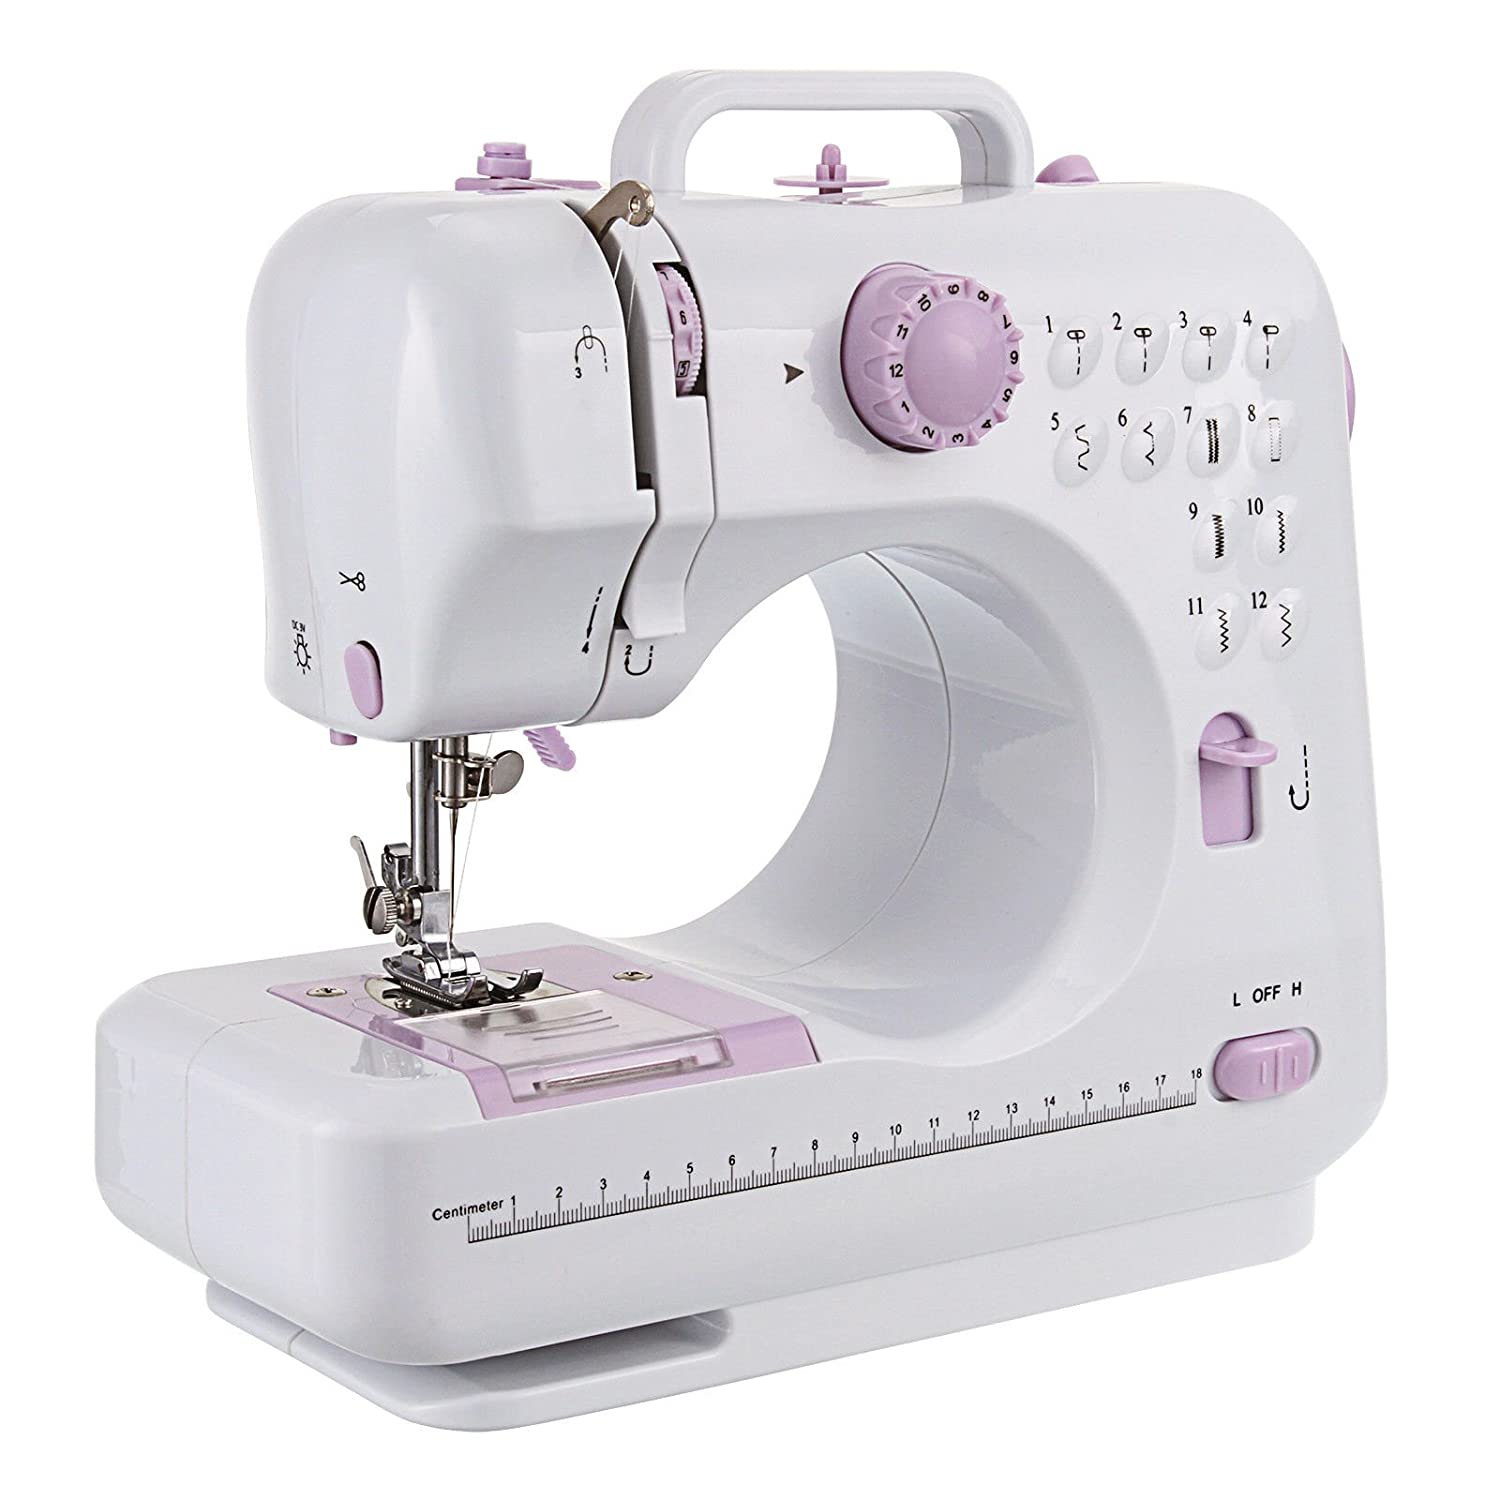 12 Stitches Electric Overlock Sewing Machine LED Double Speed Household Sewing Fanghua